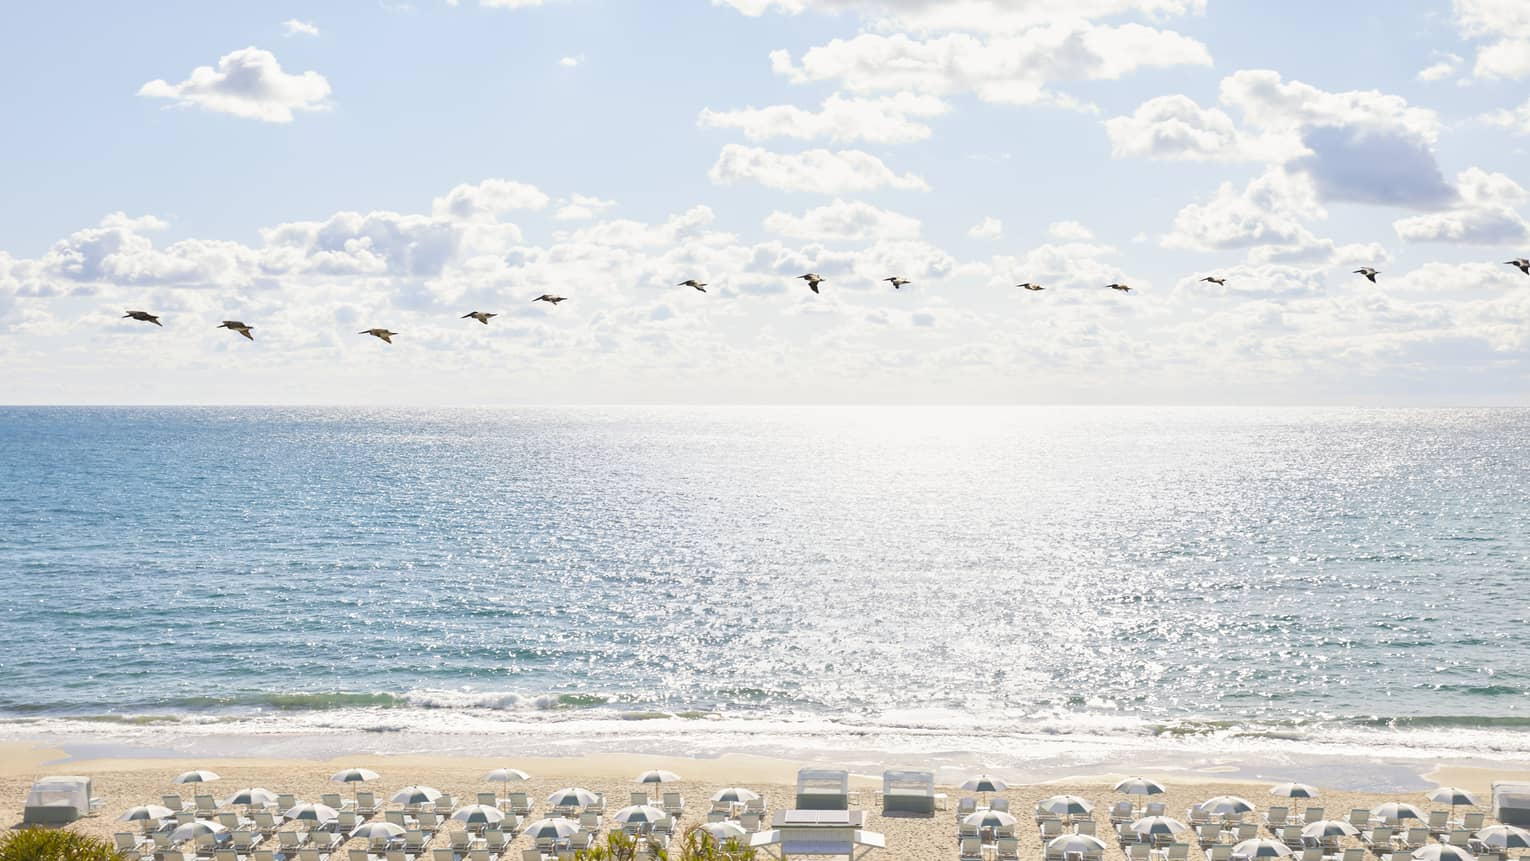 Birds fly across the sky in front of a sparkling ocean